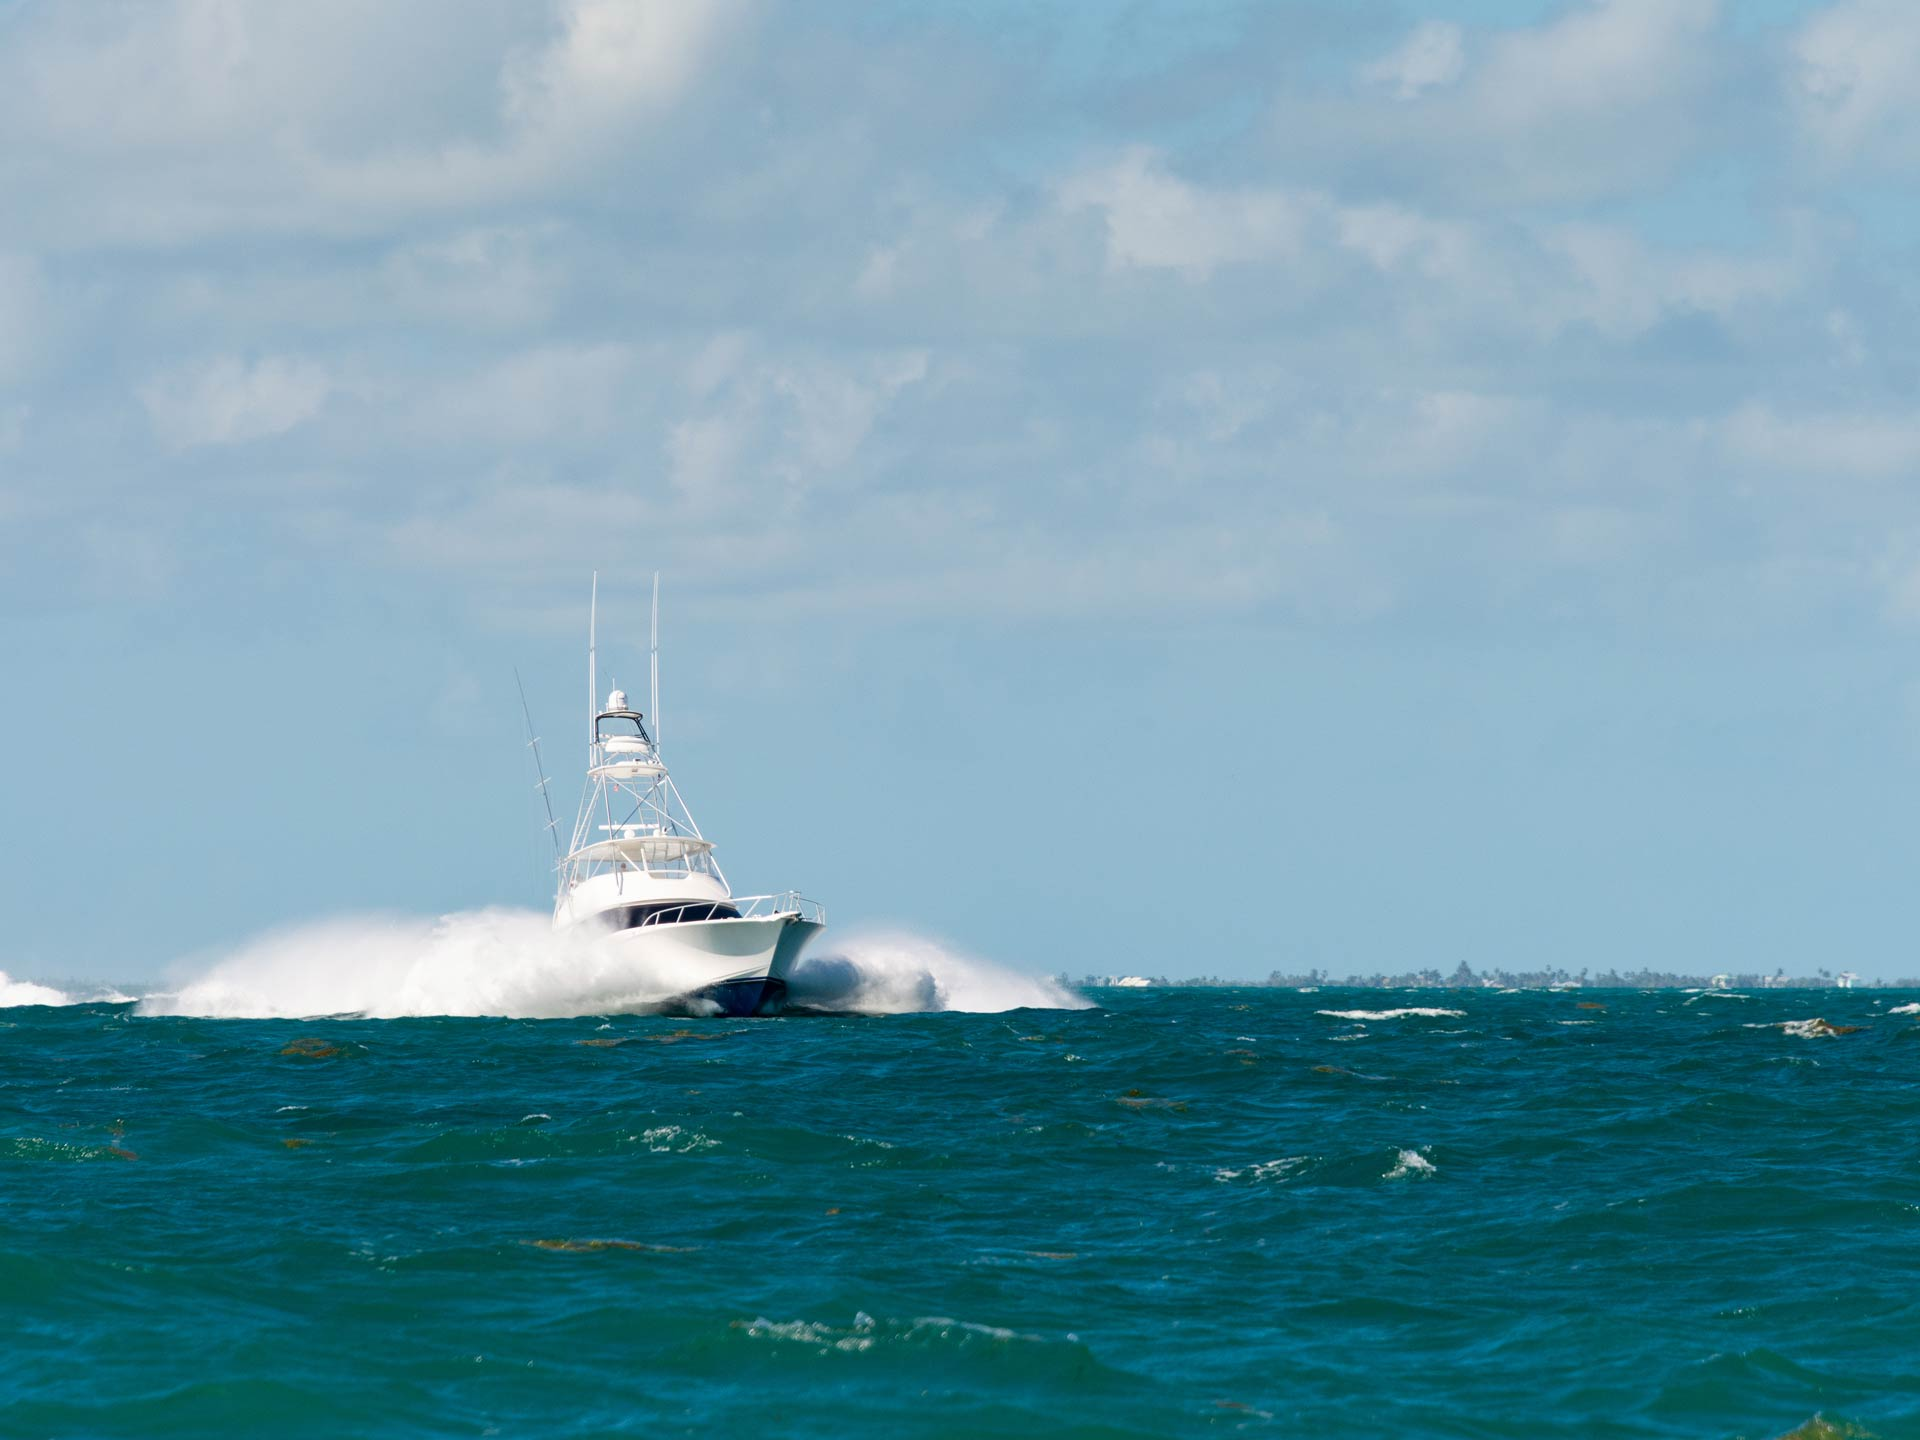 A charter boat speeding on the water